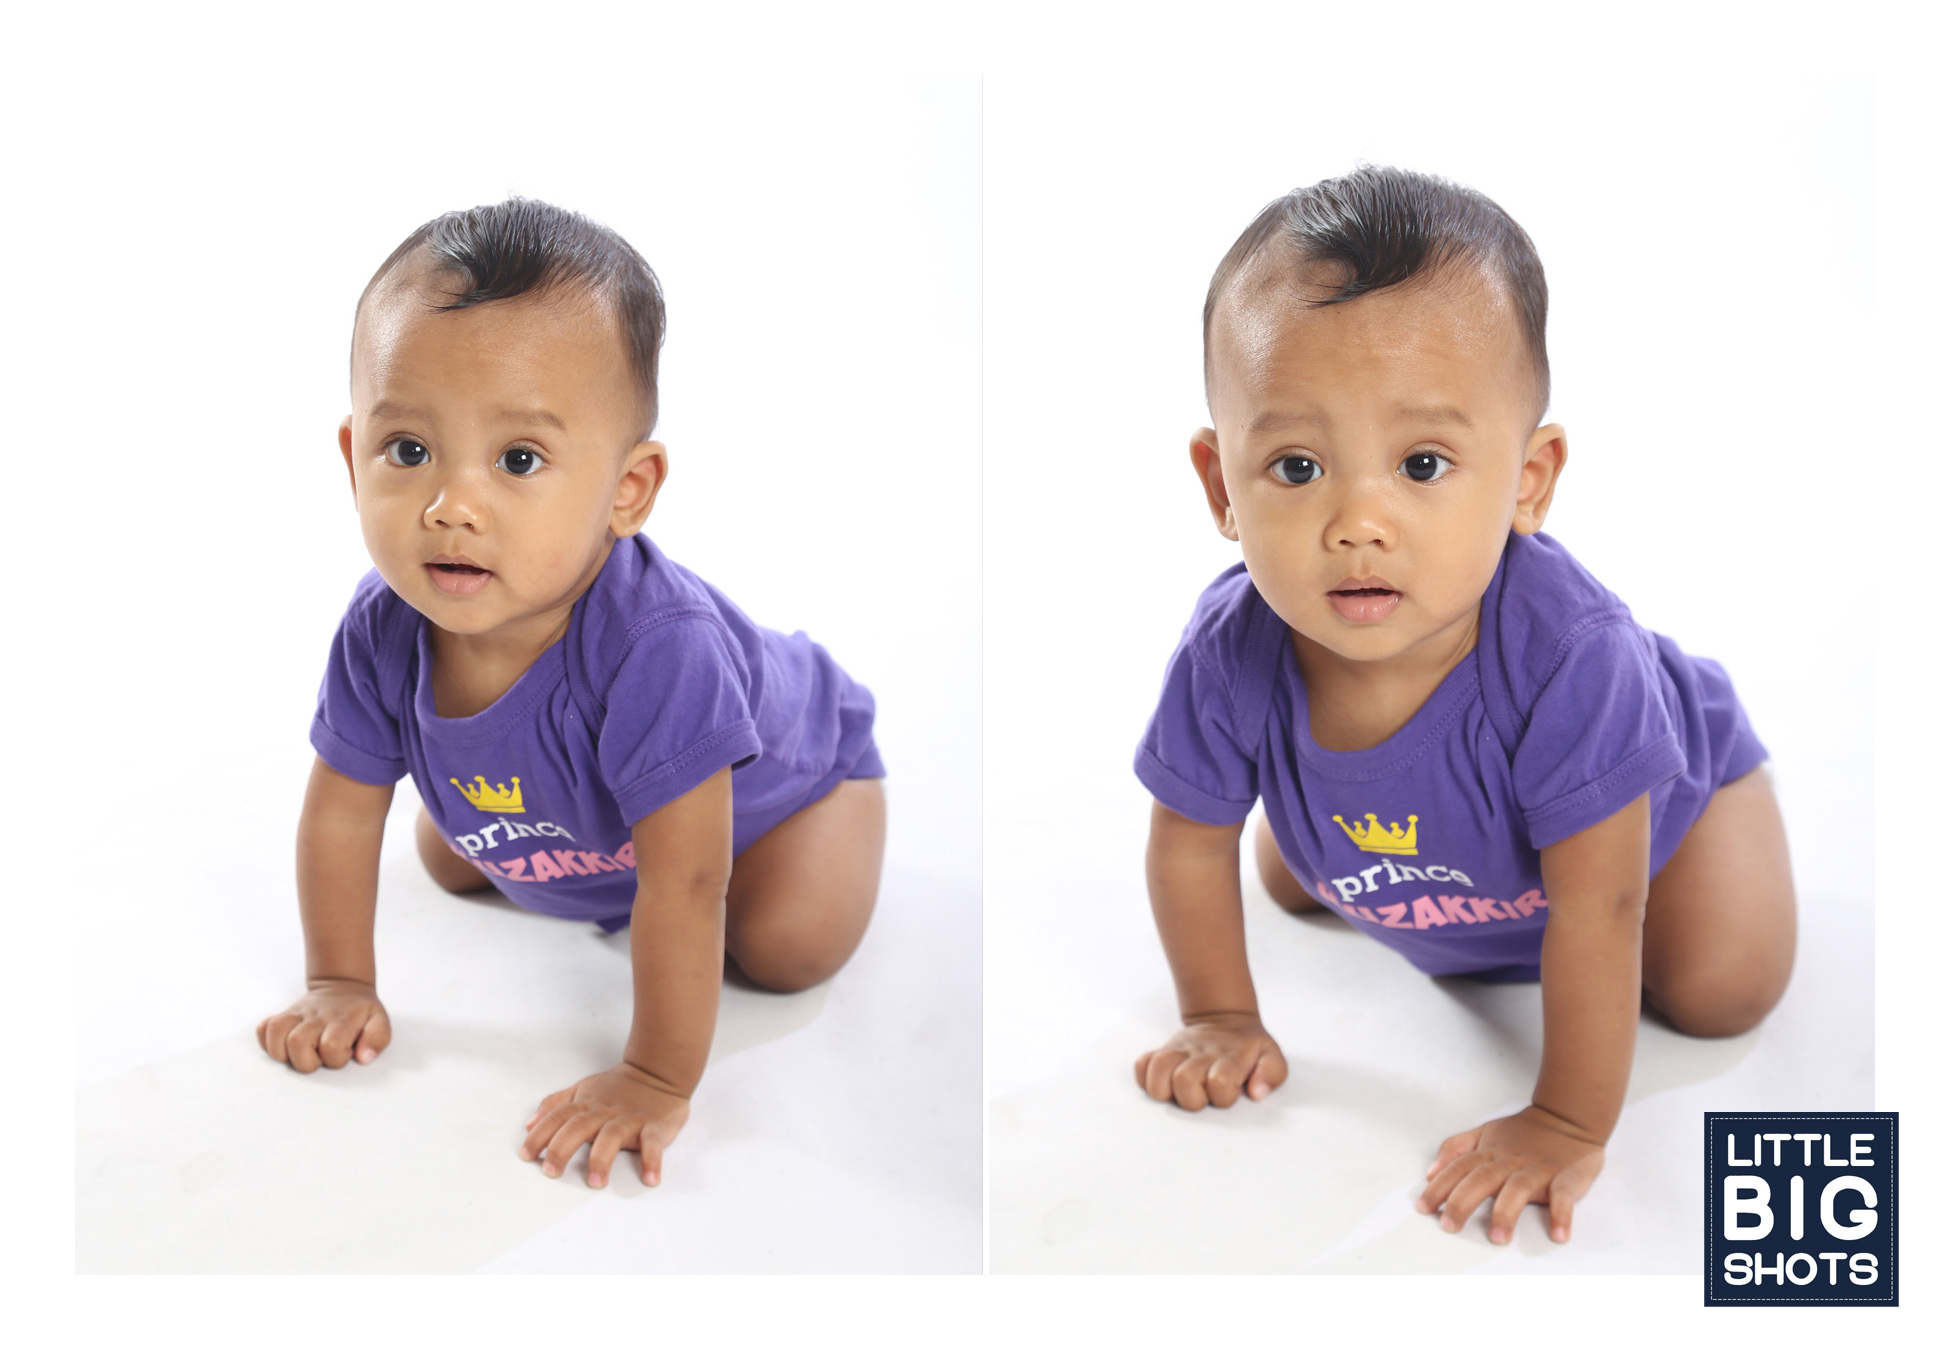 Muzakkirulquwaydir at 6 mths | Toddler Studio Portraiture